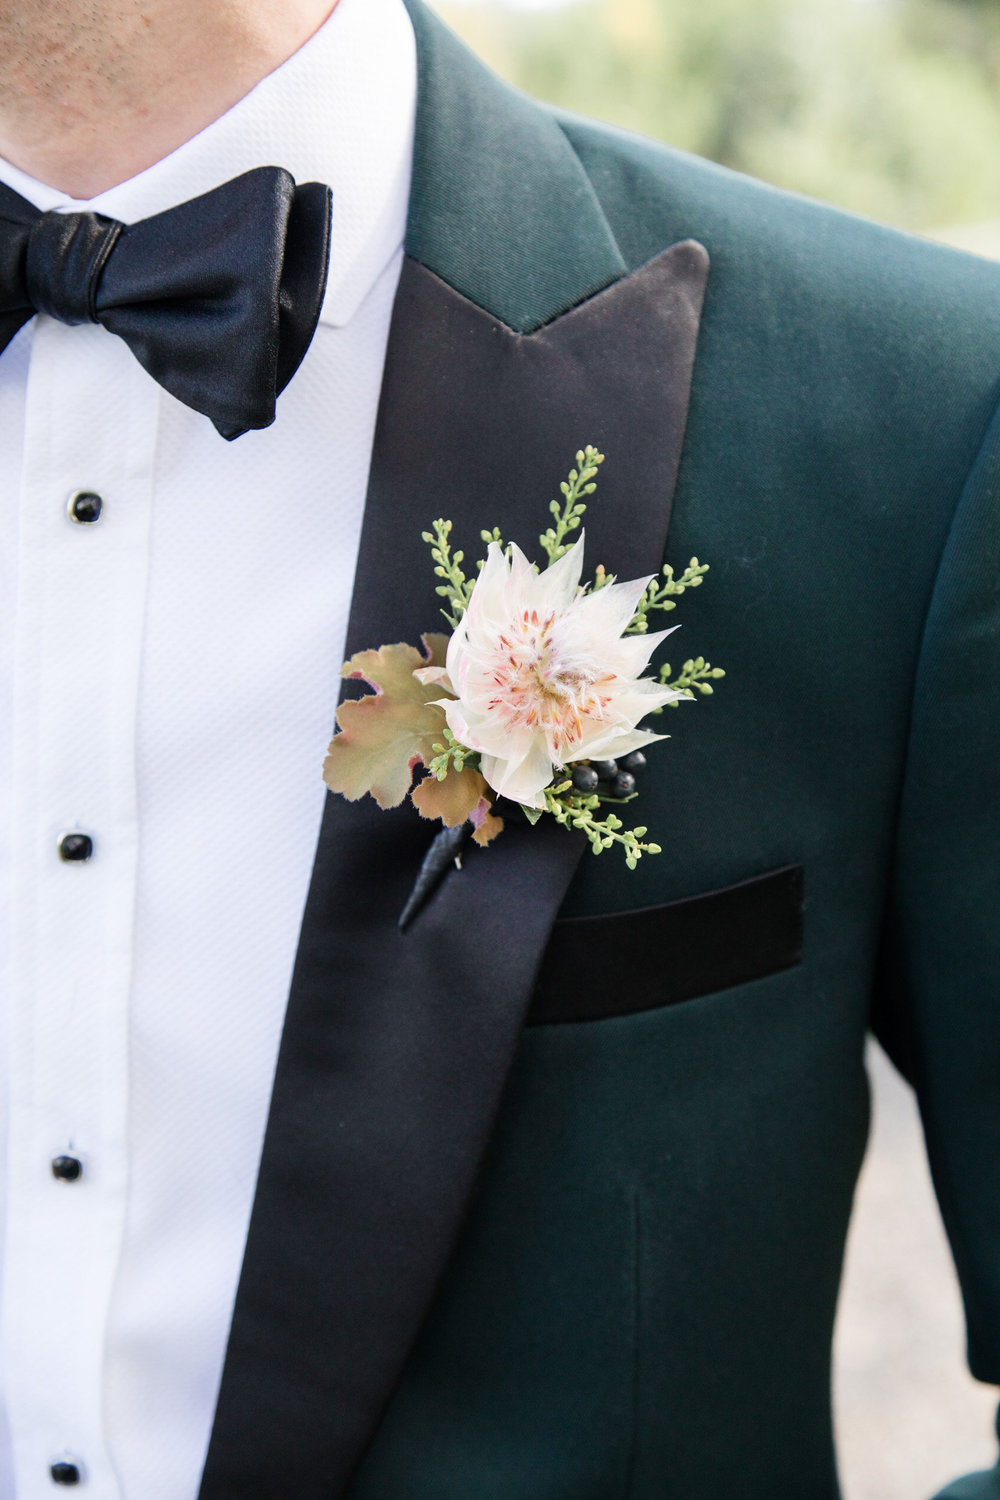 Groom's blushing bride protea boutonniere